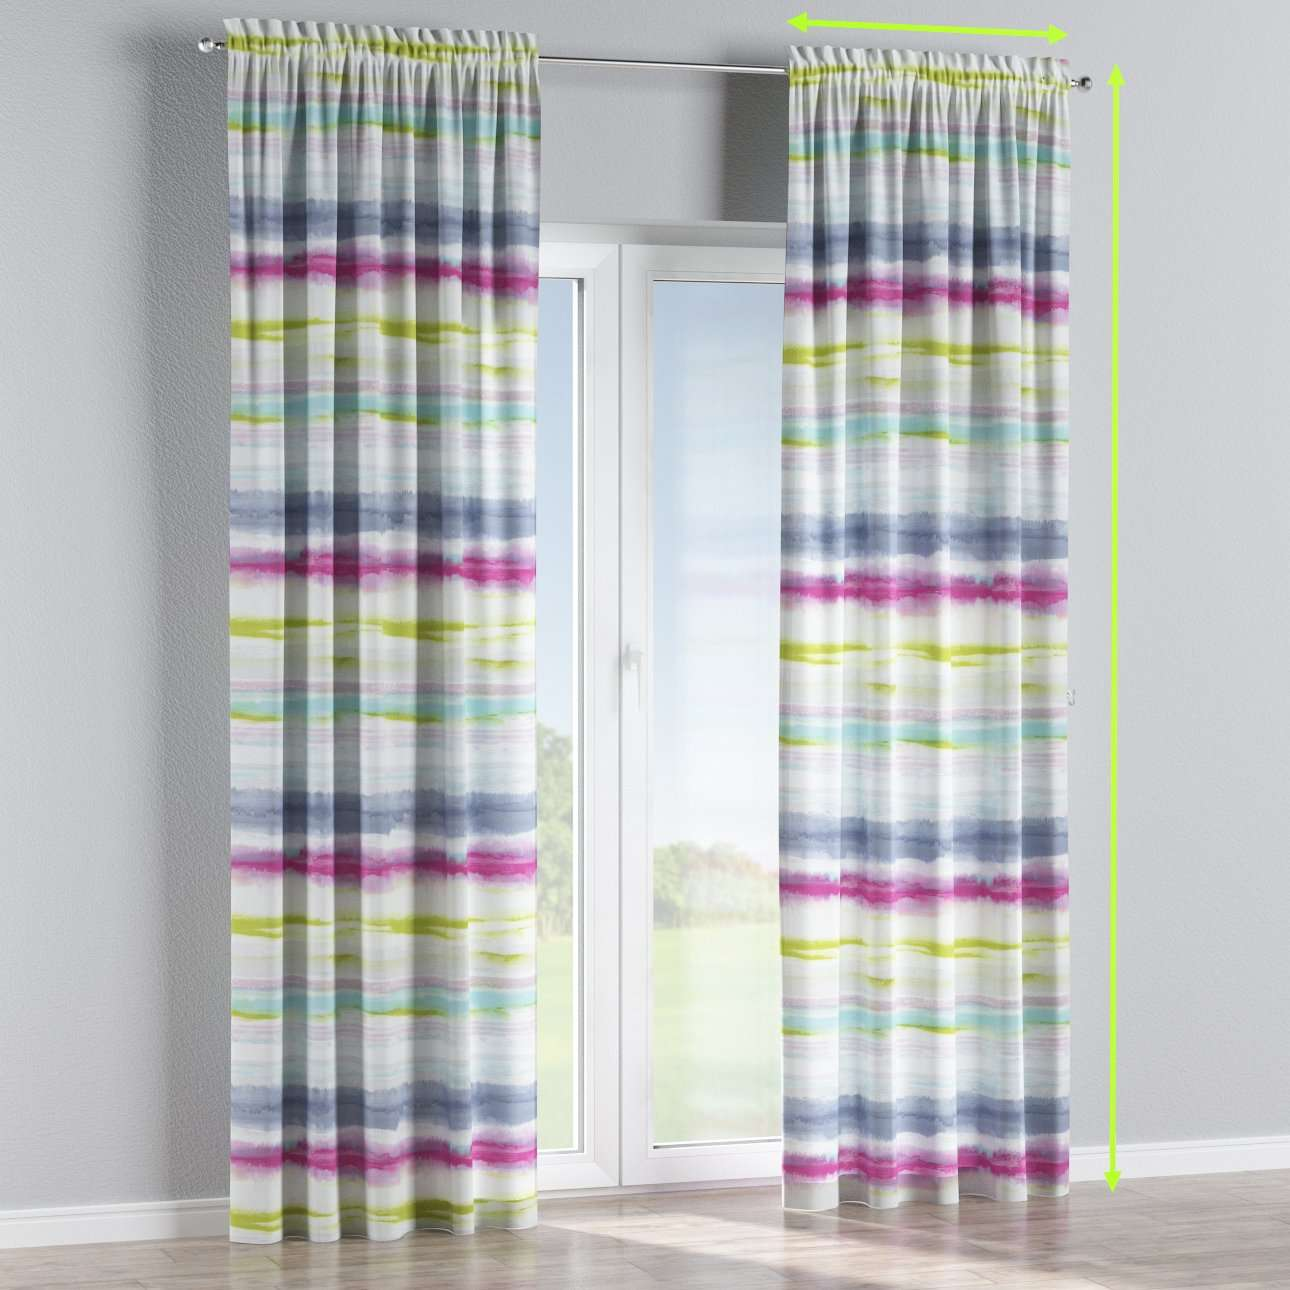 Slot and frill lined curtains in collection Aquarelle, fabric: 140-69